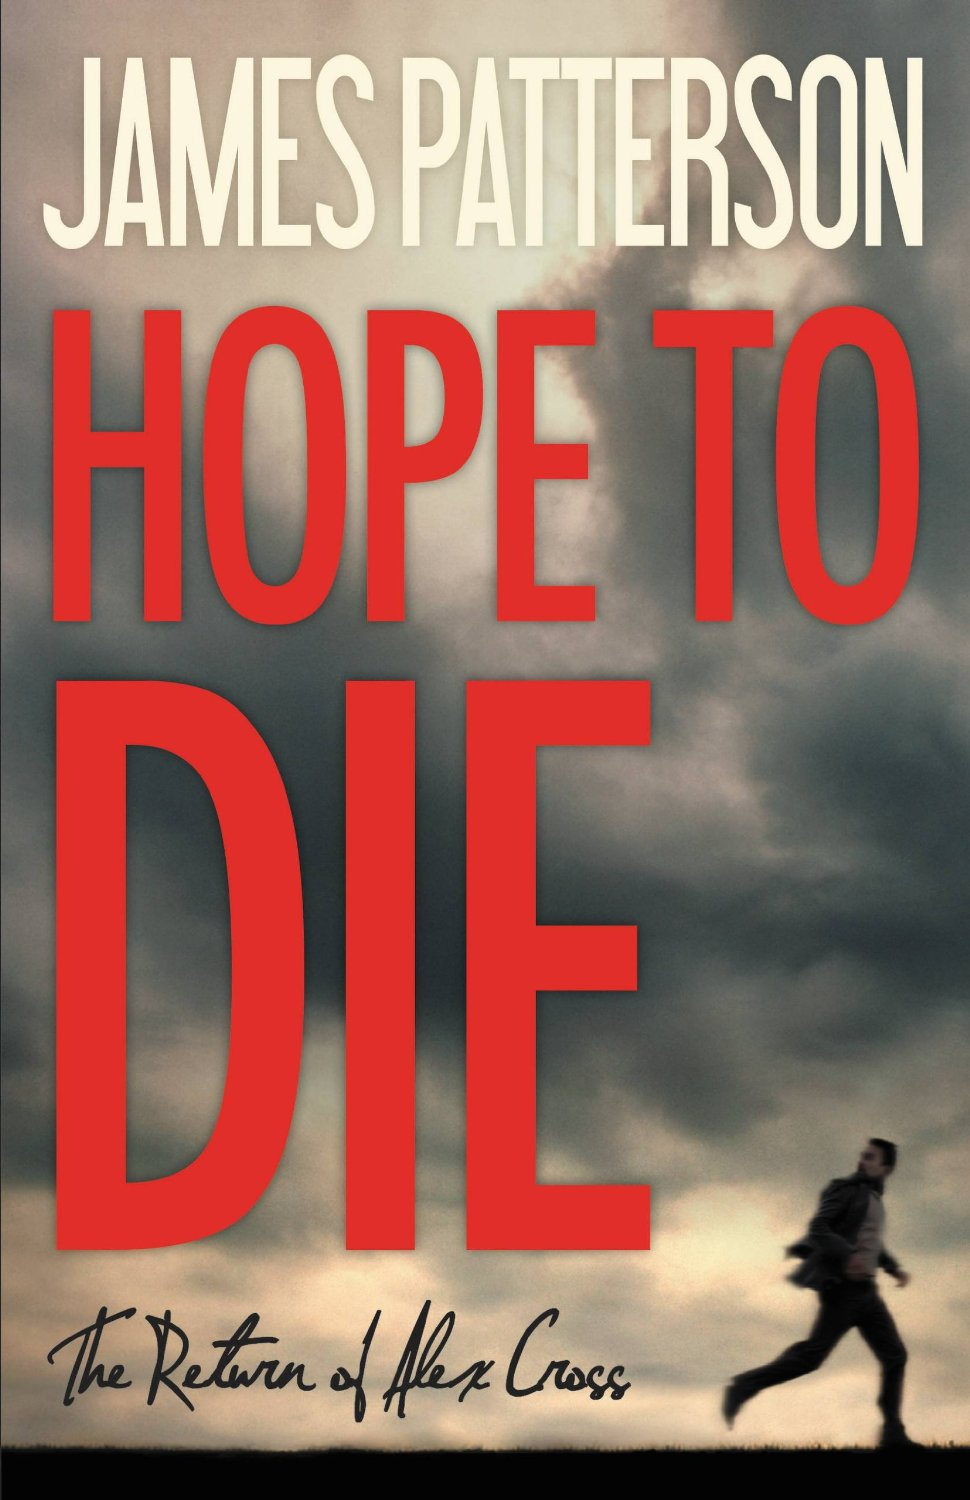 James Patterson - Hope To Die